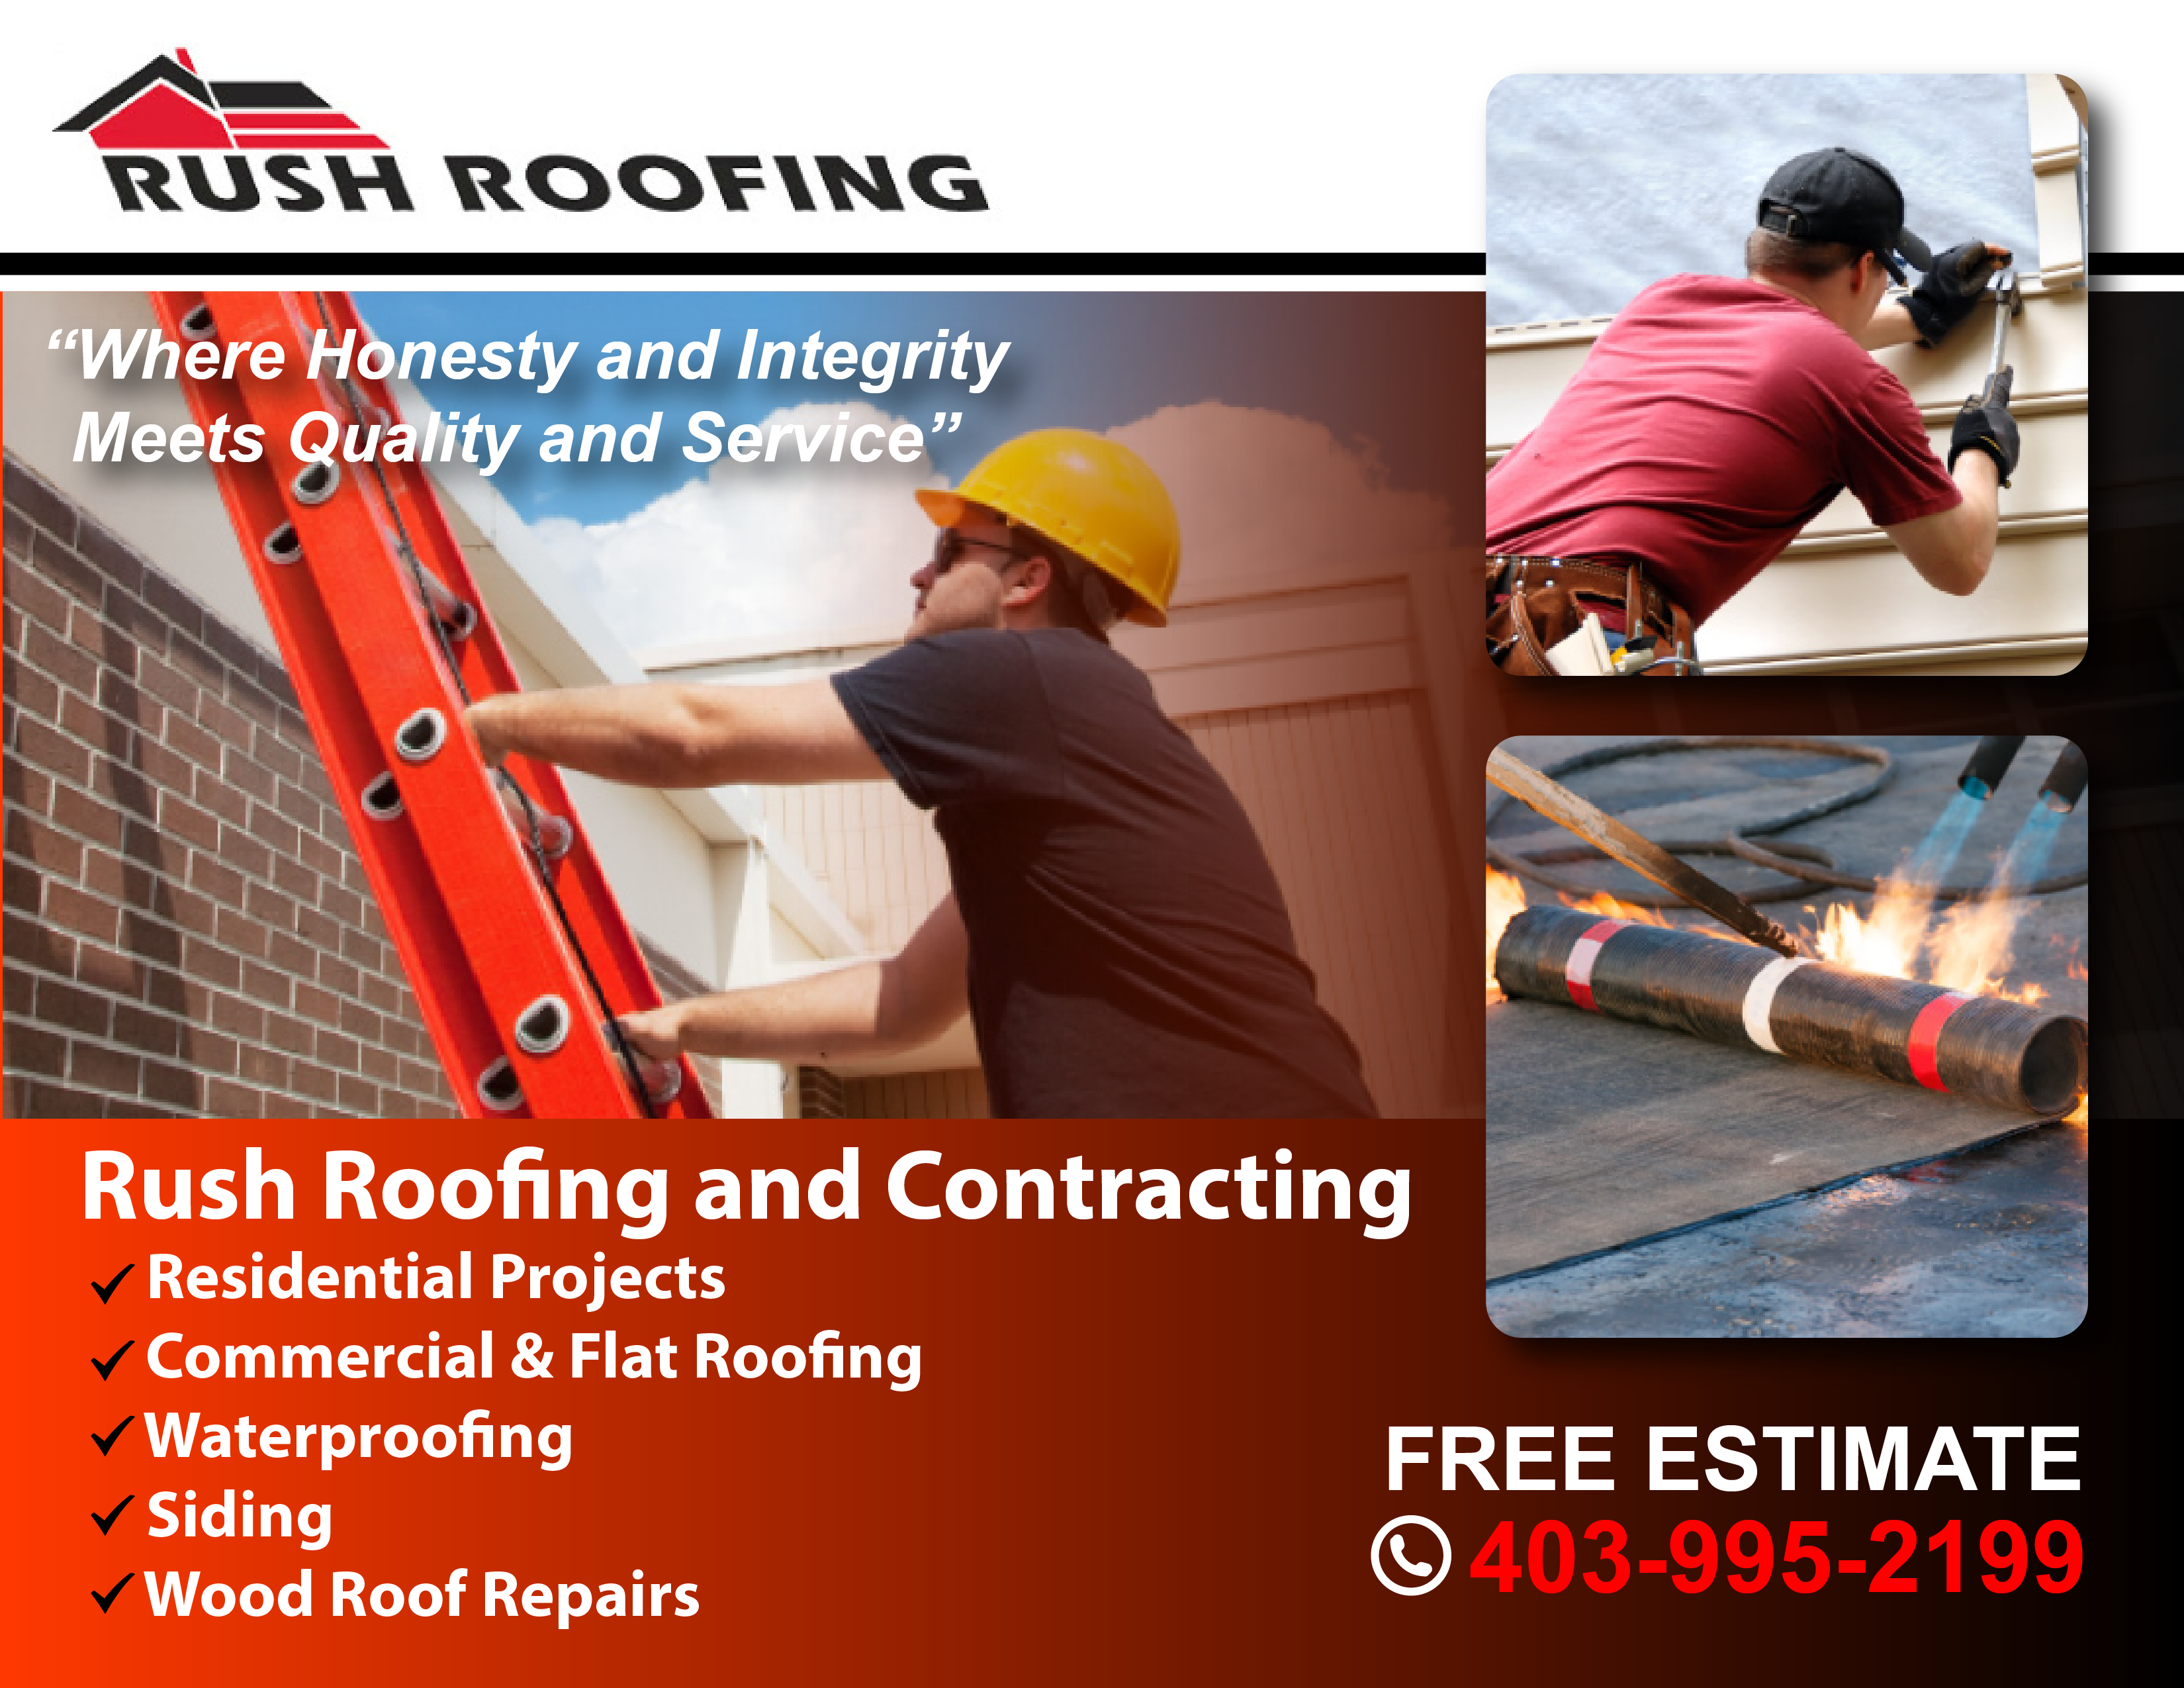 Rush Roofing